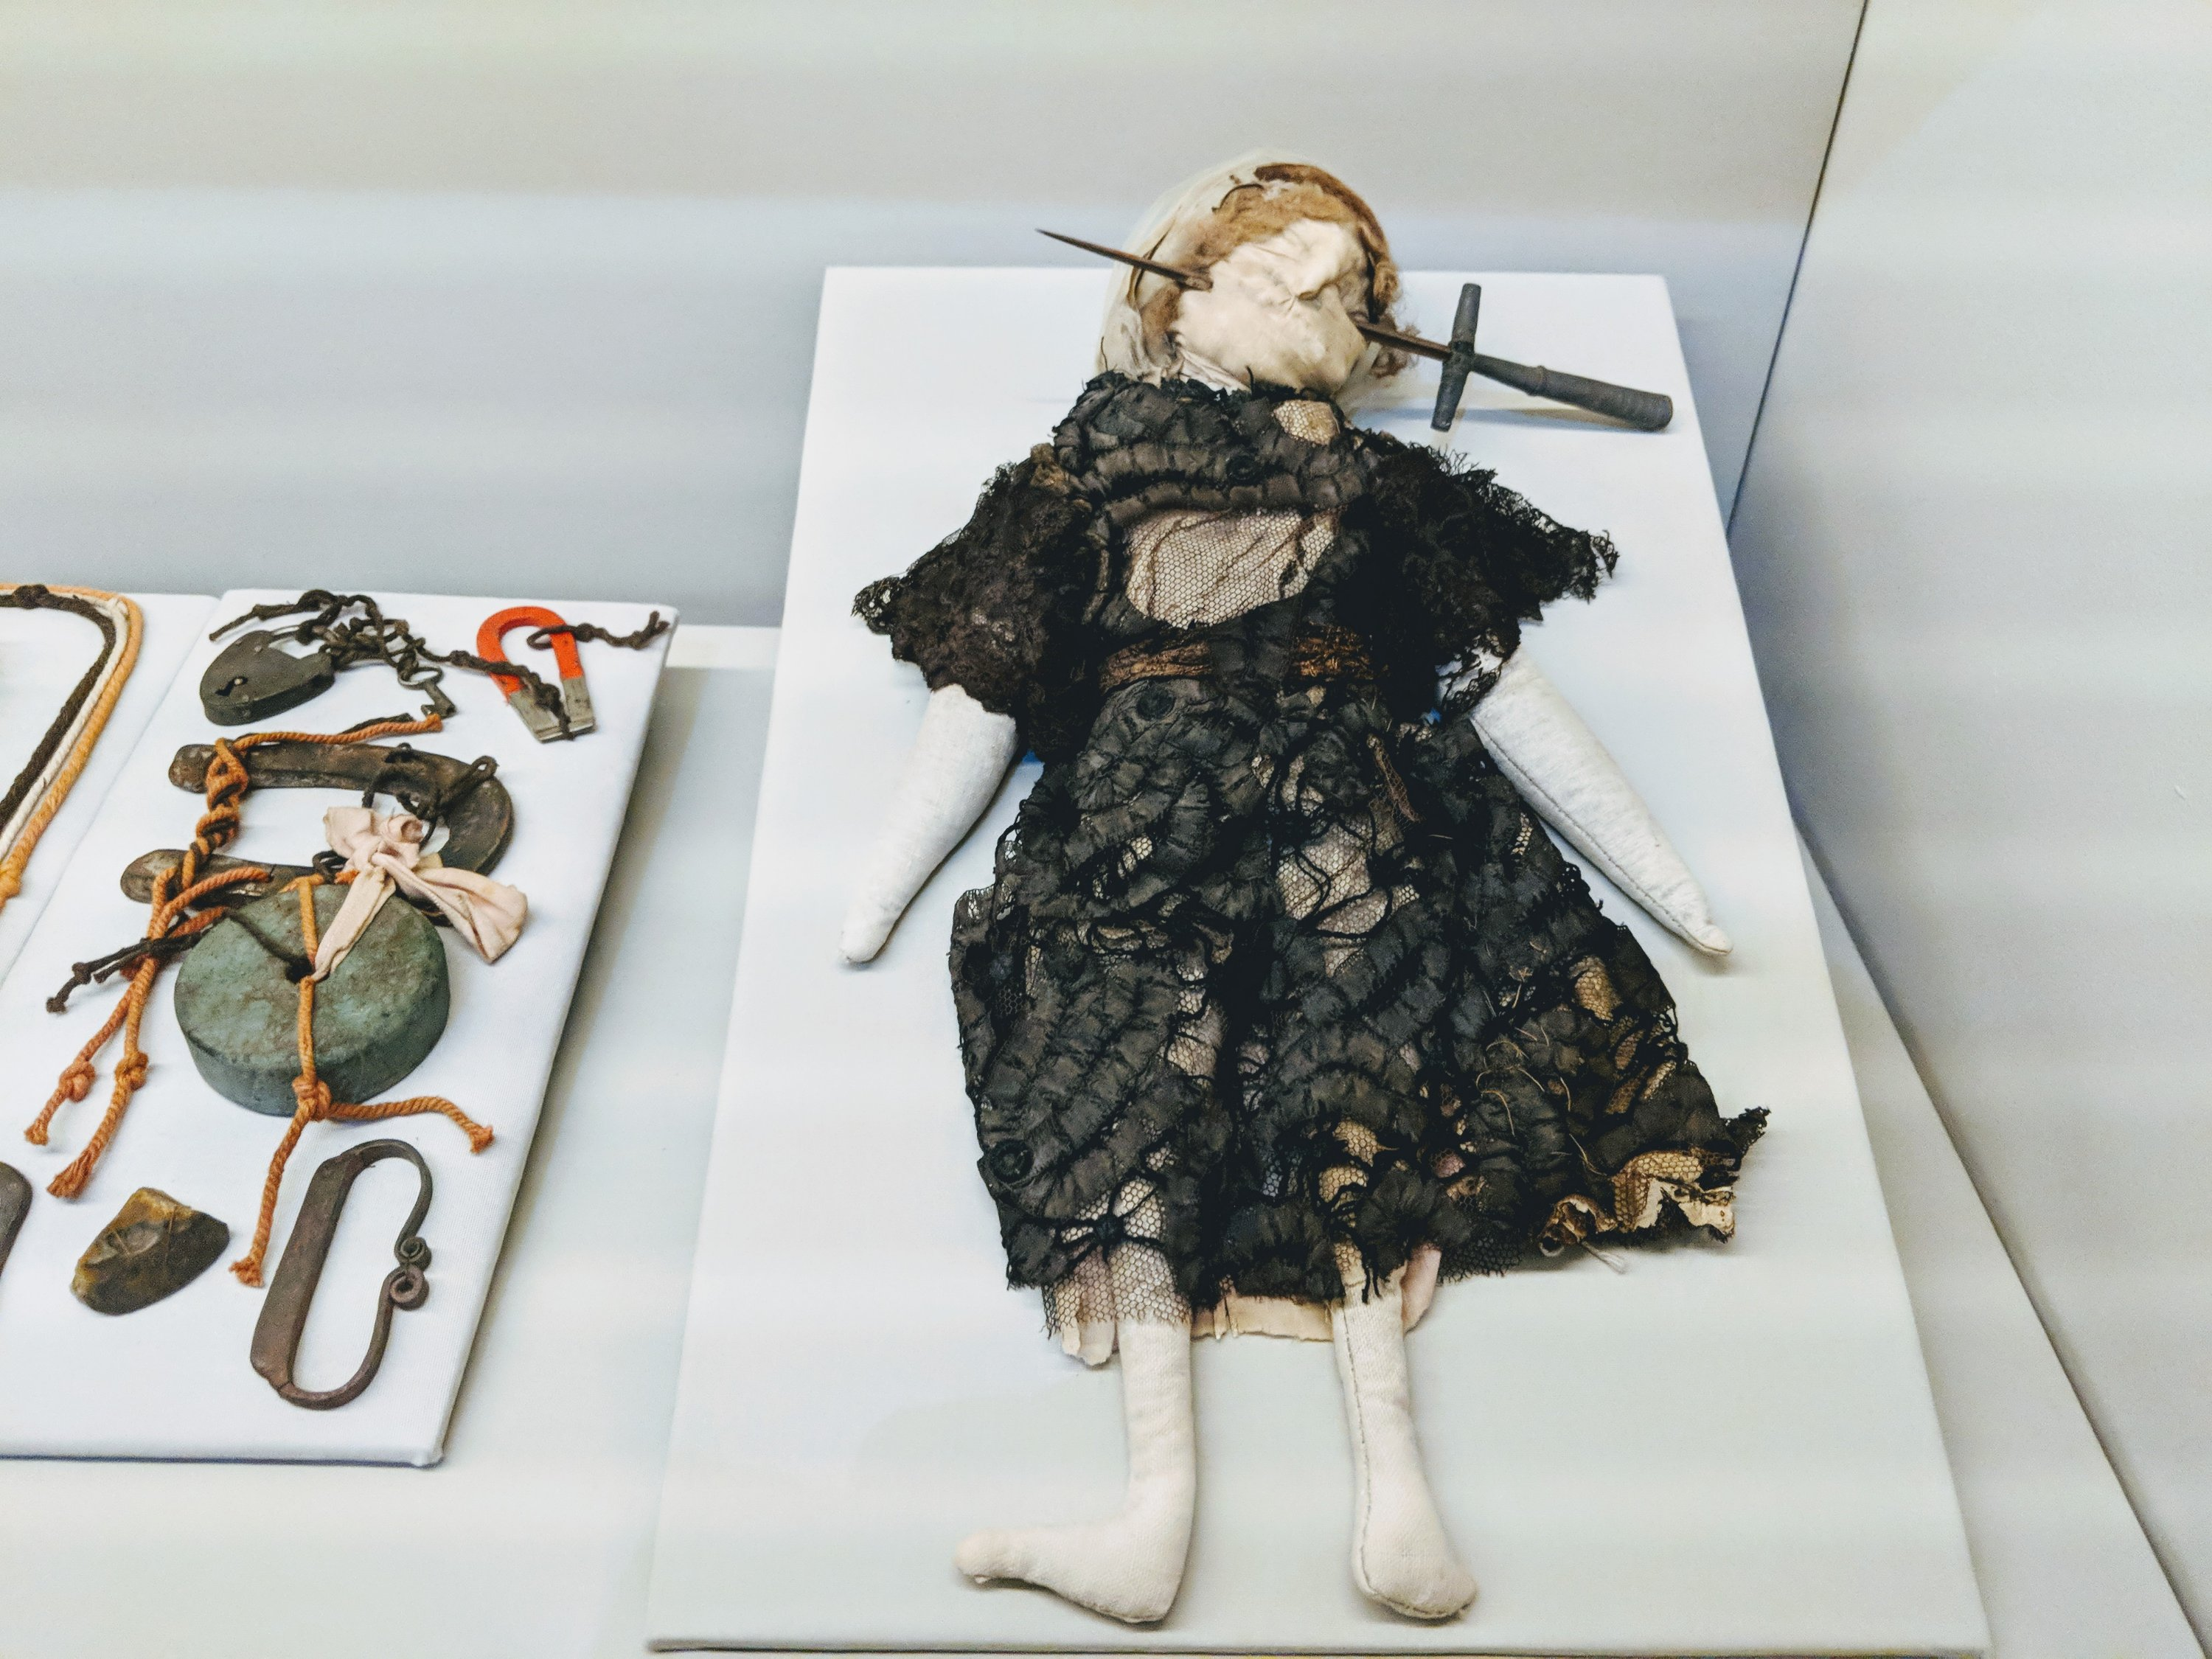 Voodoo doll and other witchcraft objects from the Spellbound Exhibition at the Ashmolean in Oxford, UK.